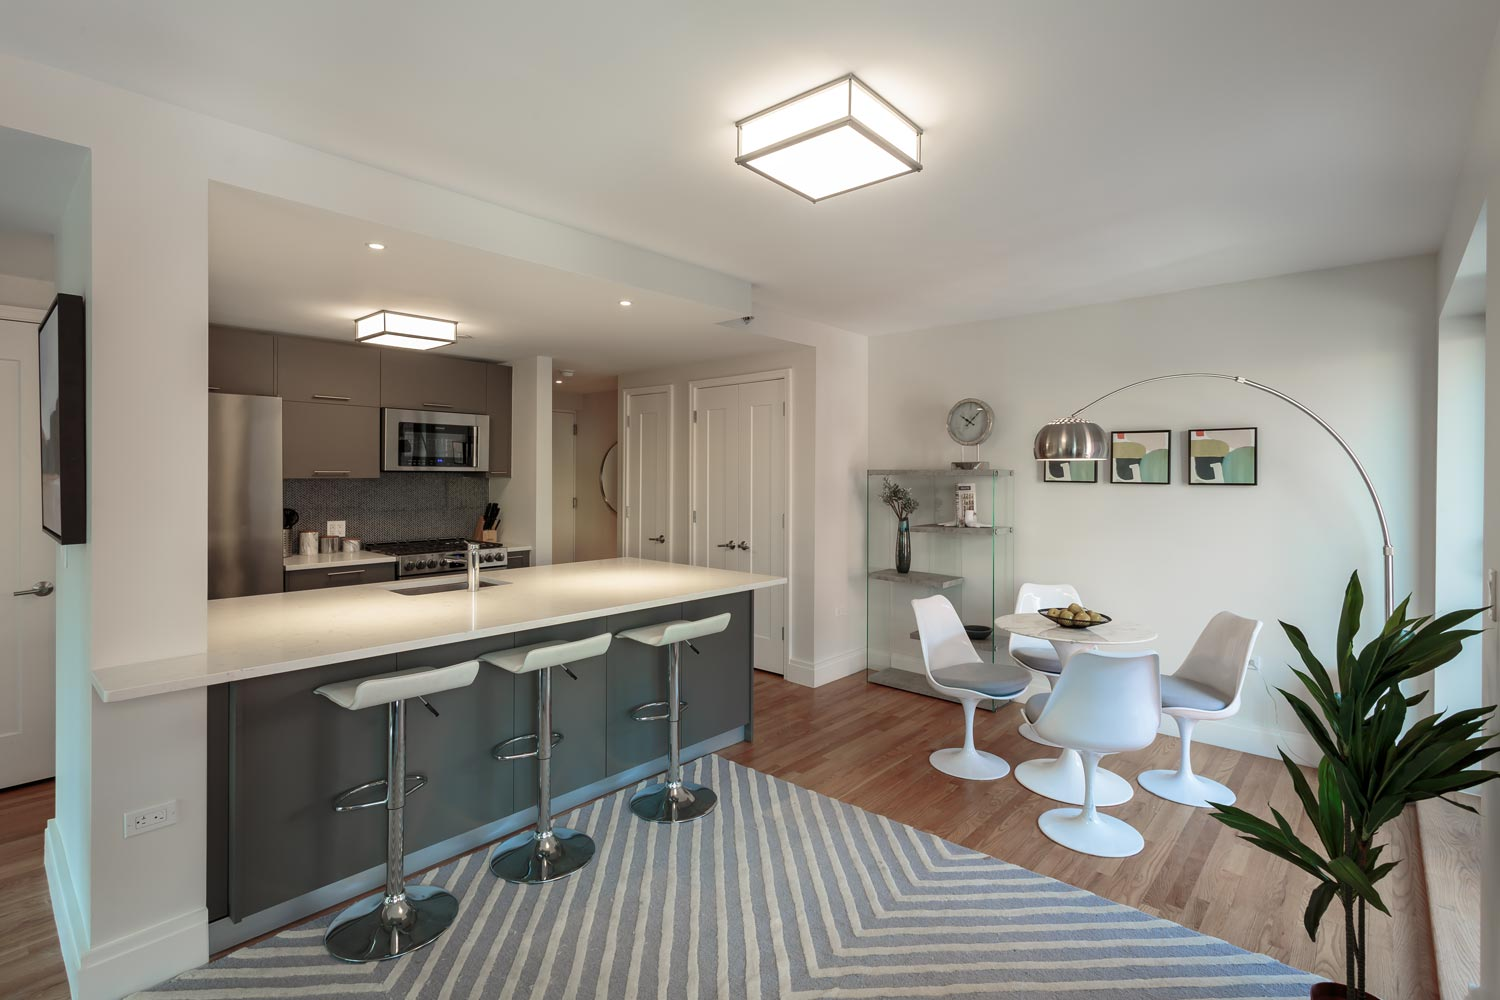 Each unit at The Milo features open kitchens with high end finishes and appliances